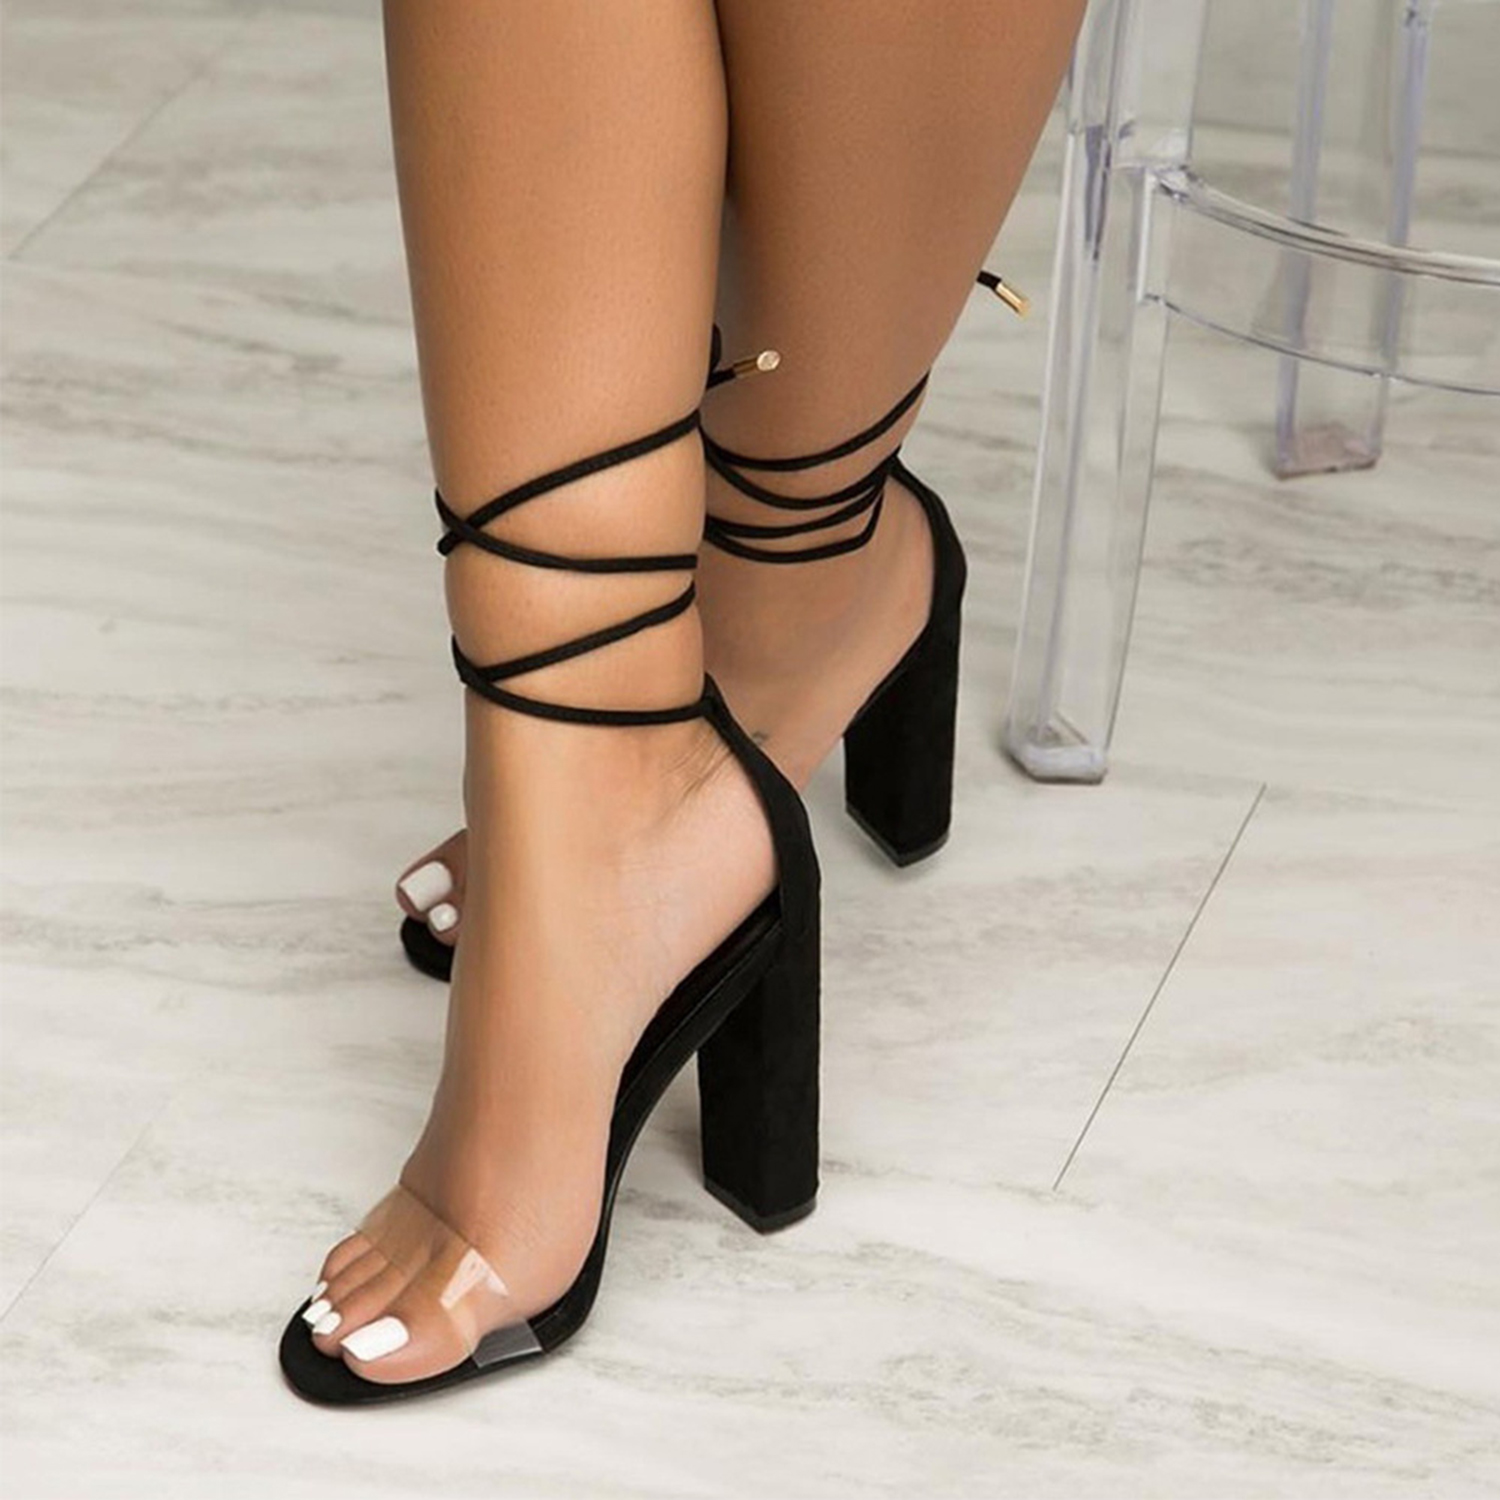 382d368be40 Women s Open Toe Lace up High Heels Sandals STYLESIMO.com. Loading zoom